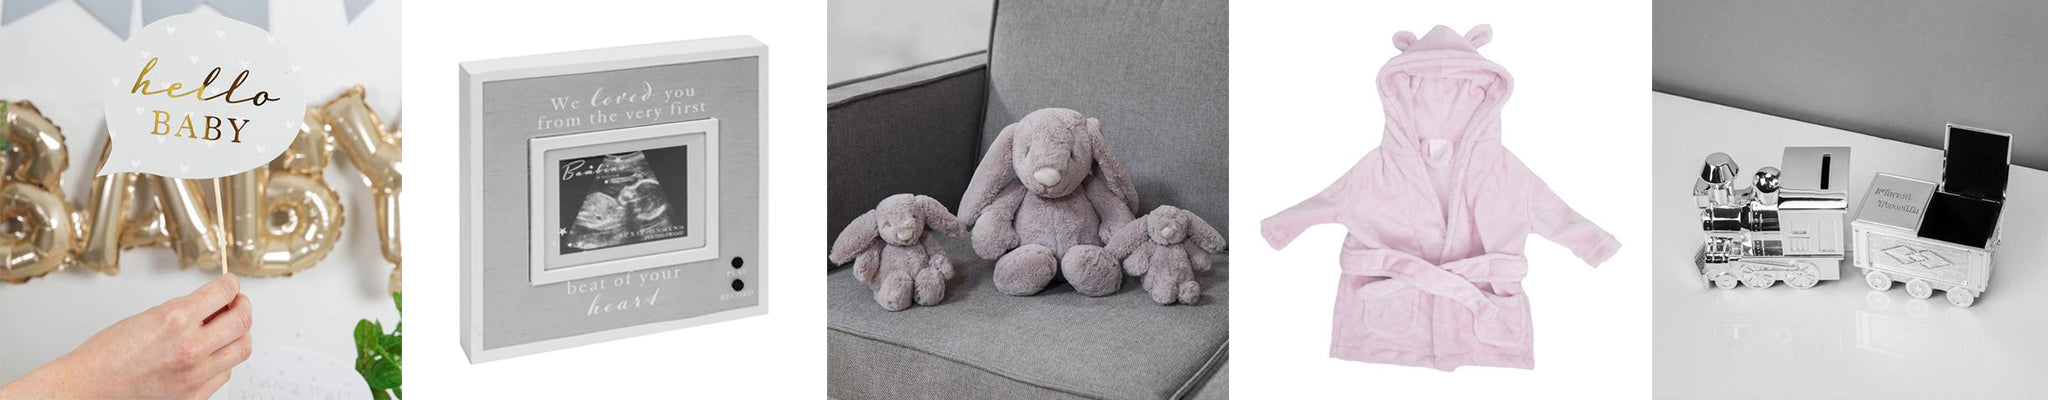 gifts for baby - bambino by Juliana product range